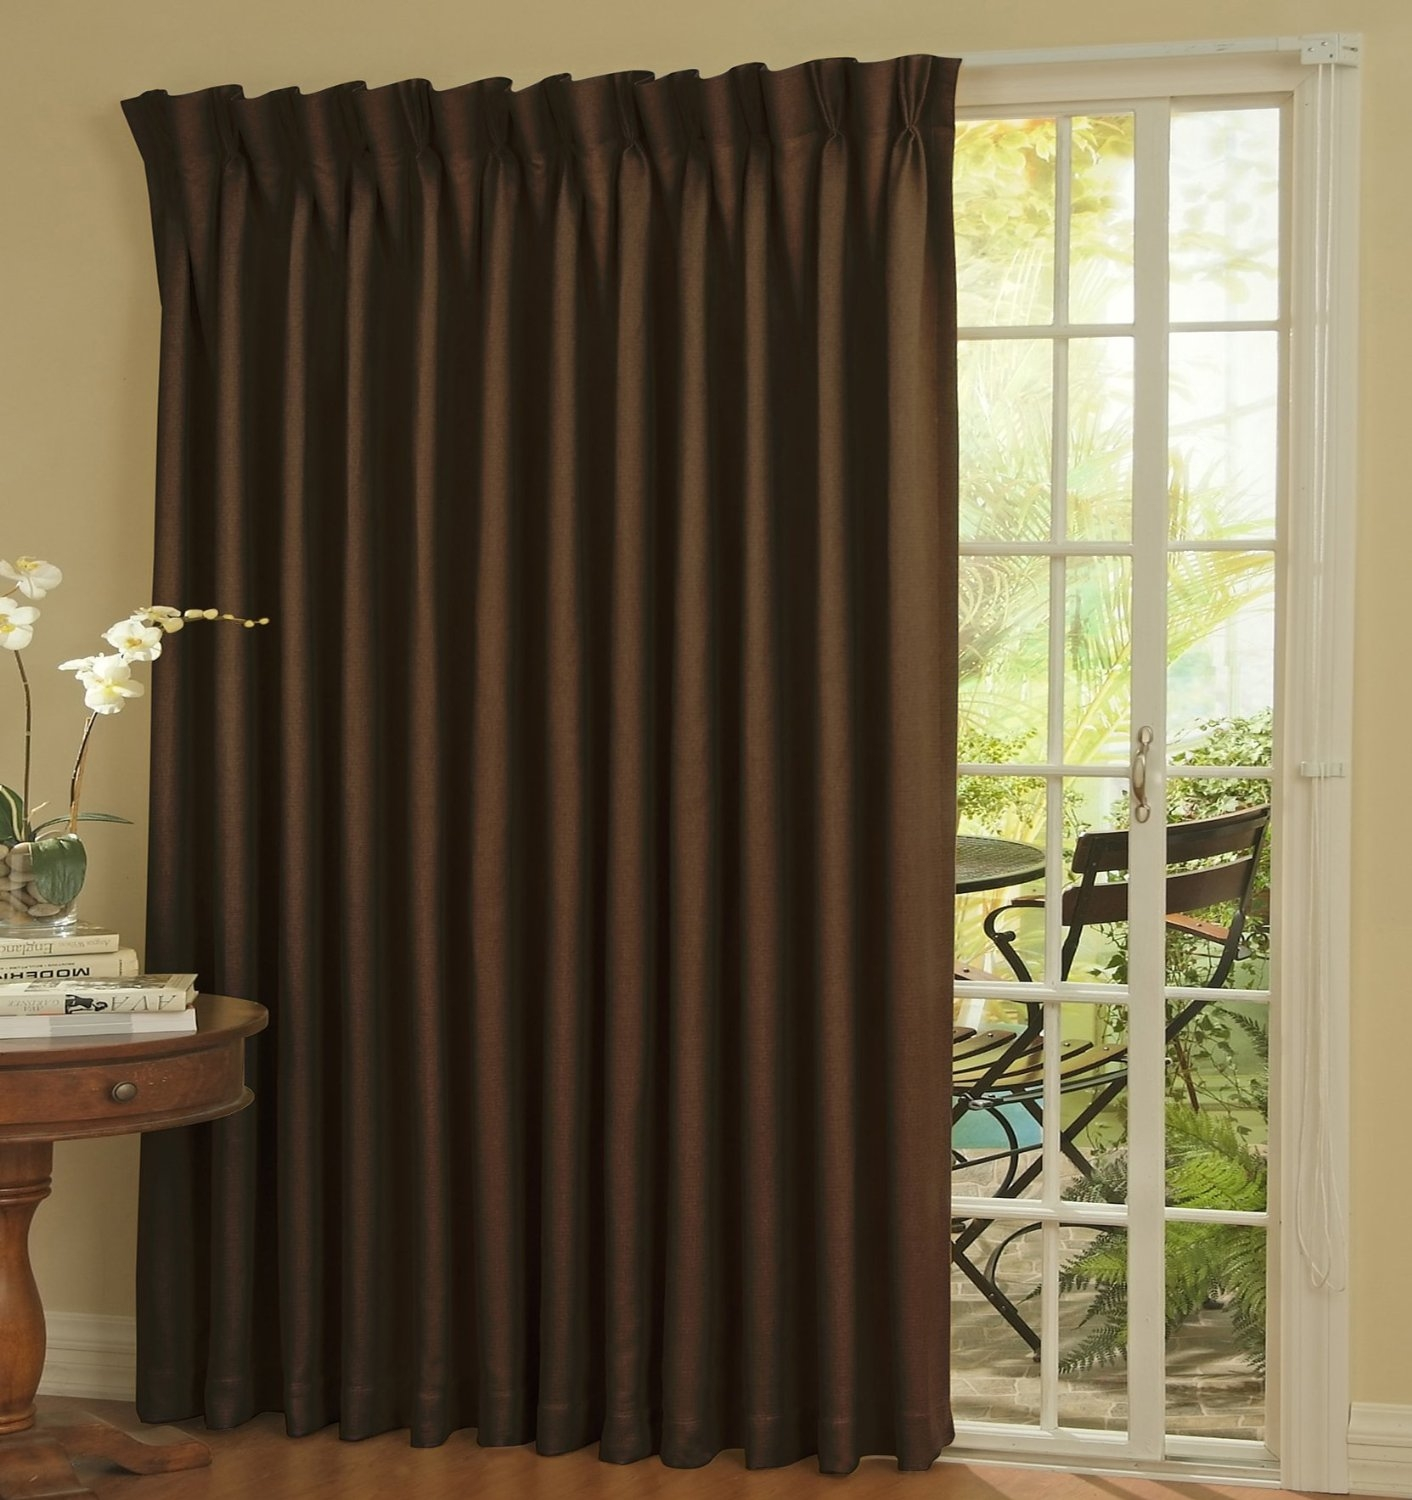 Inexpensive Curtains For Large Windows Curtain Ideas